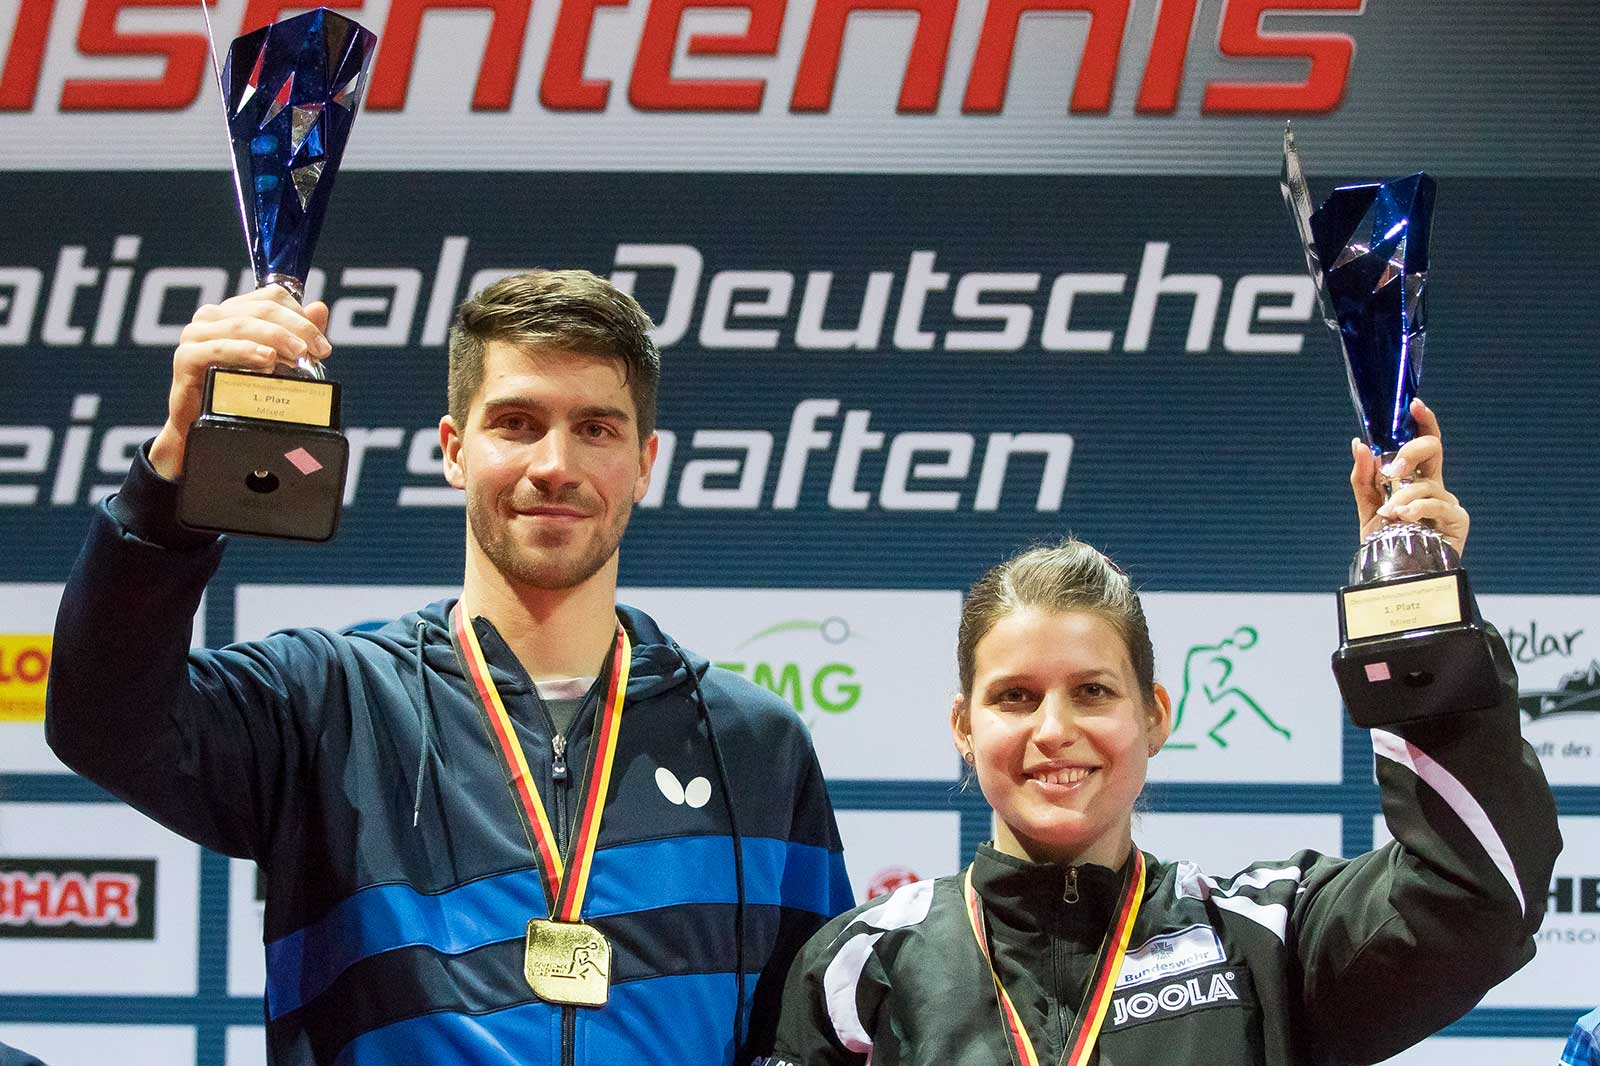 Deutscher Meister Mixed DM 2019 in Wetzlar (Foto: Marco Steinbrenner)